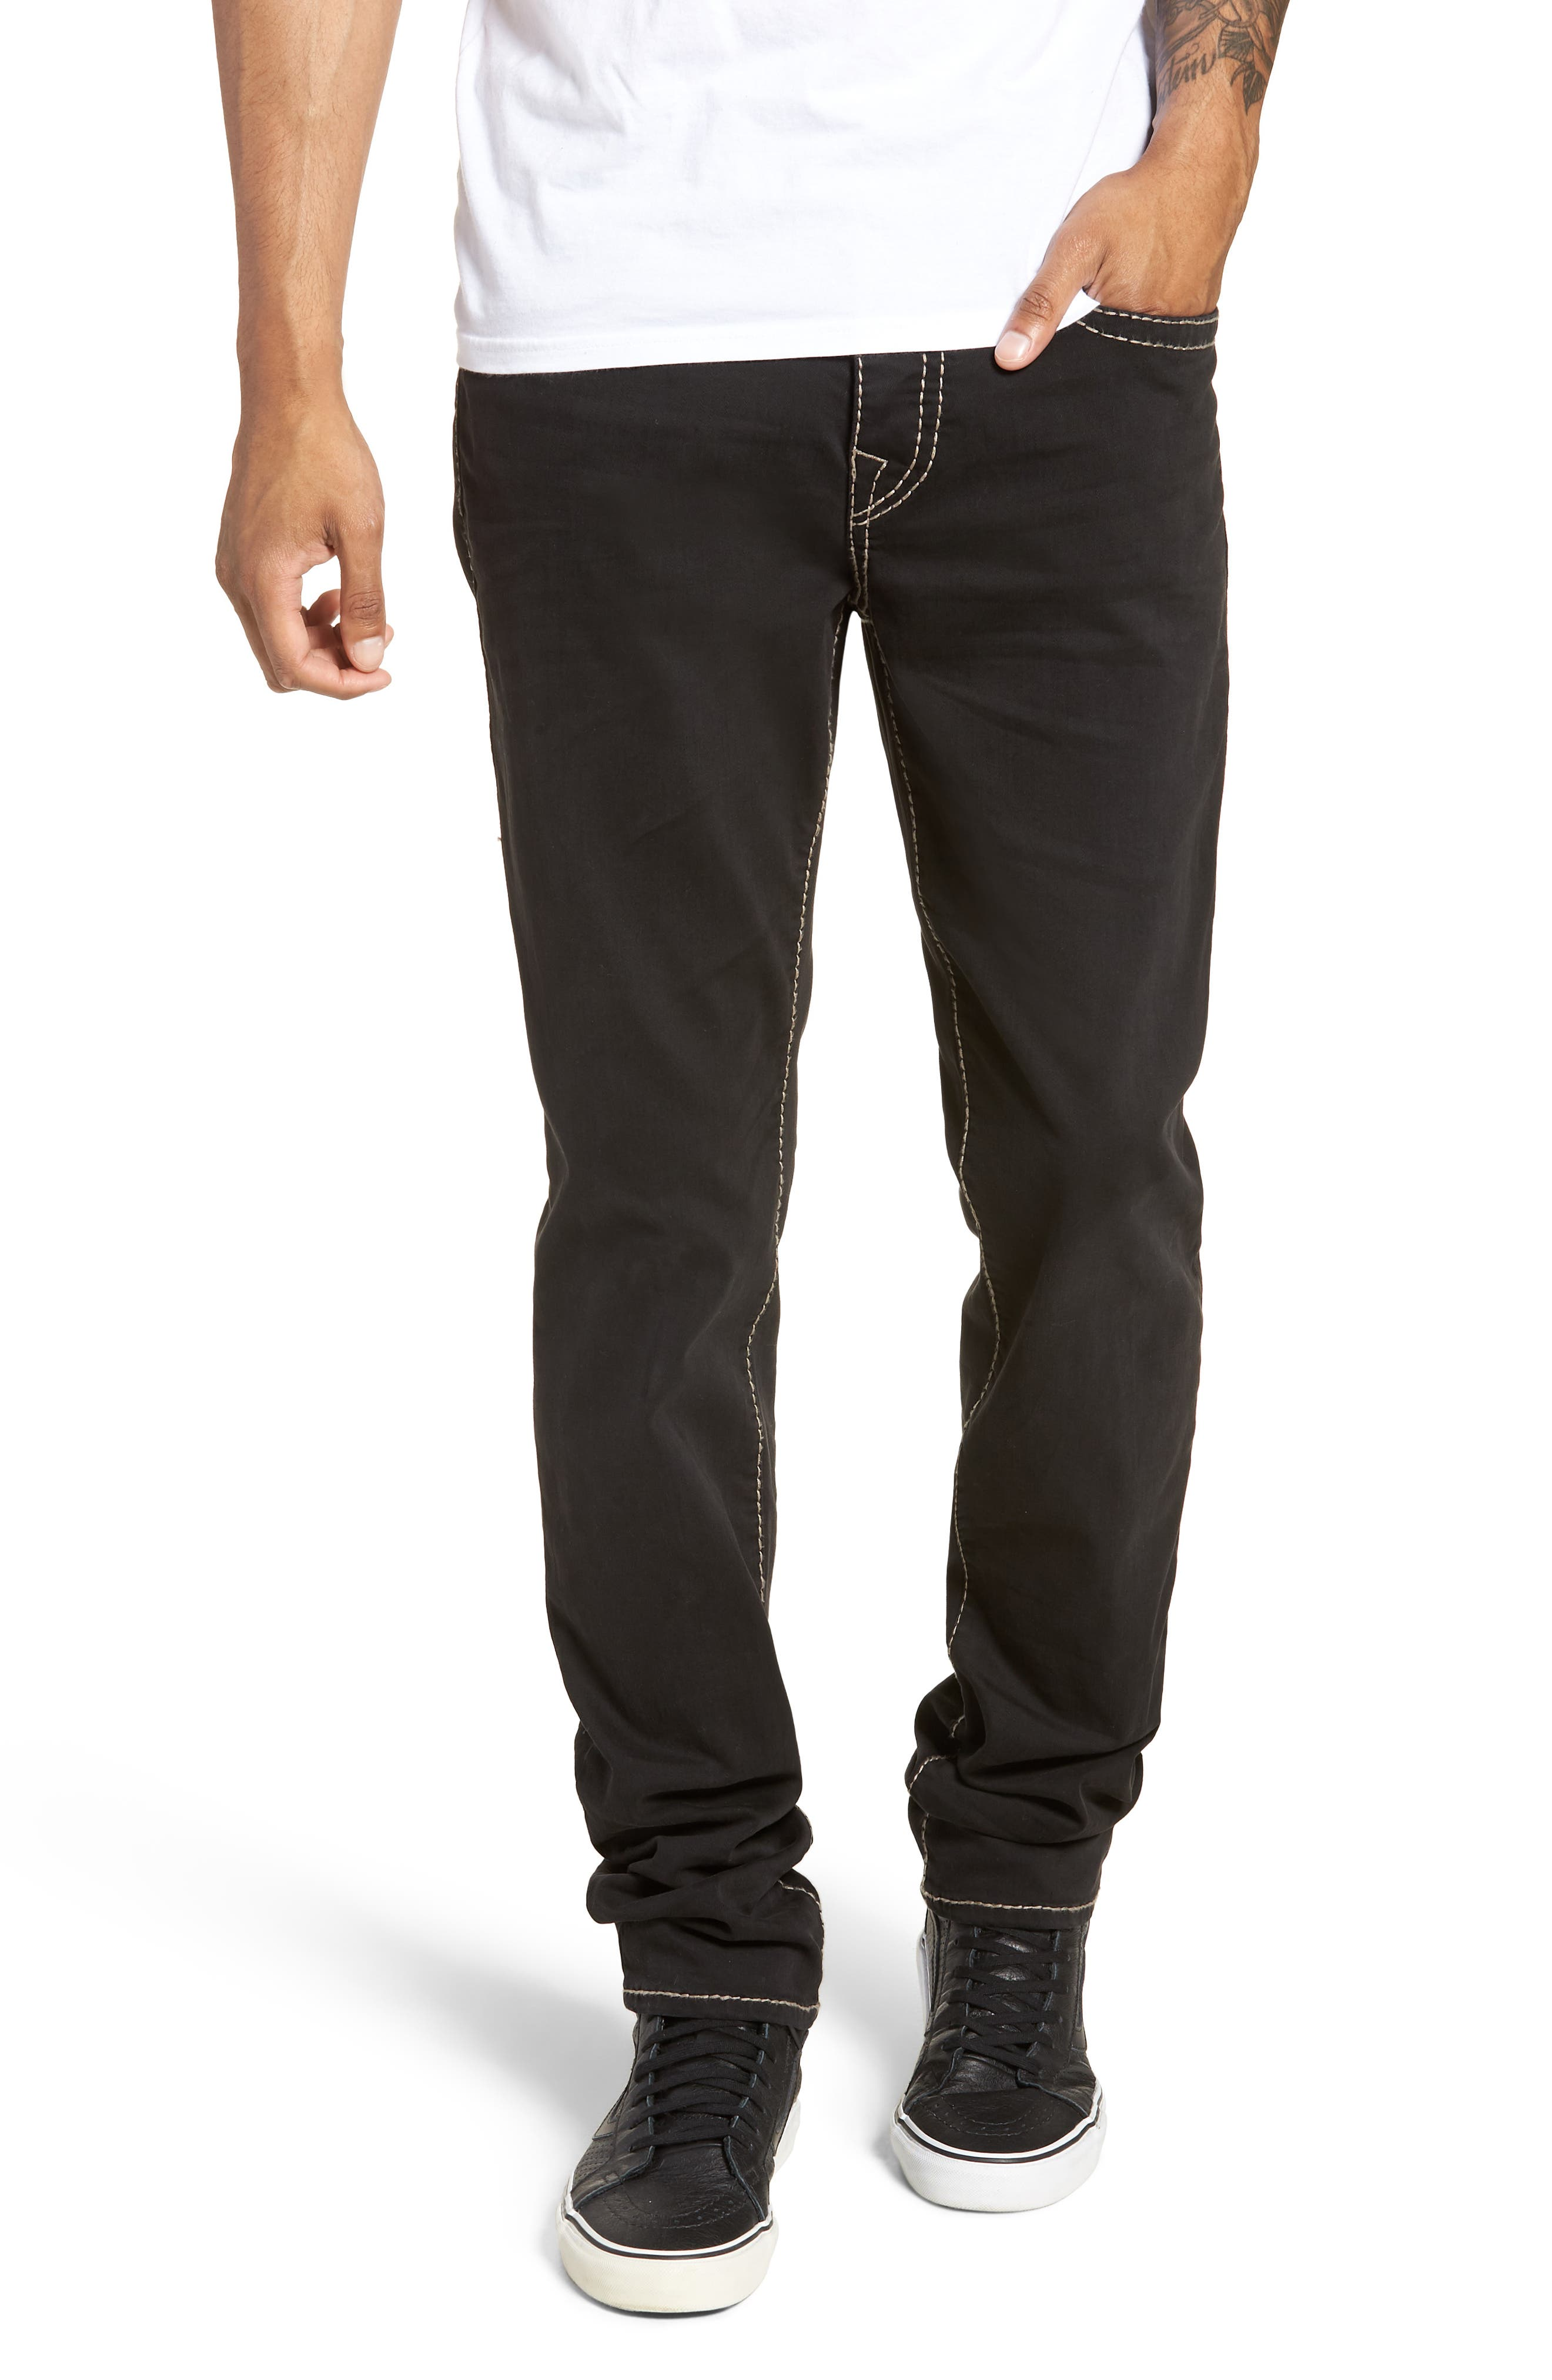 Rocco Skinny Fit Jeans,                             Main thumbnail 1, color,                             BLACK